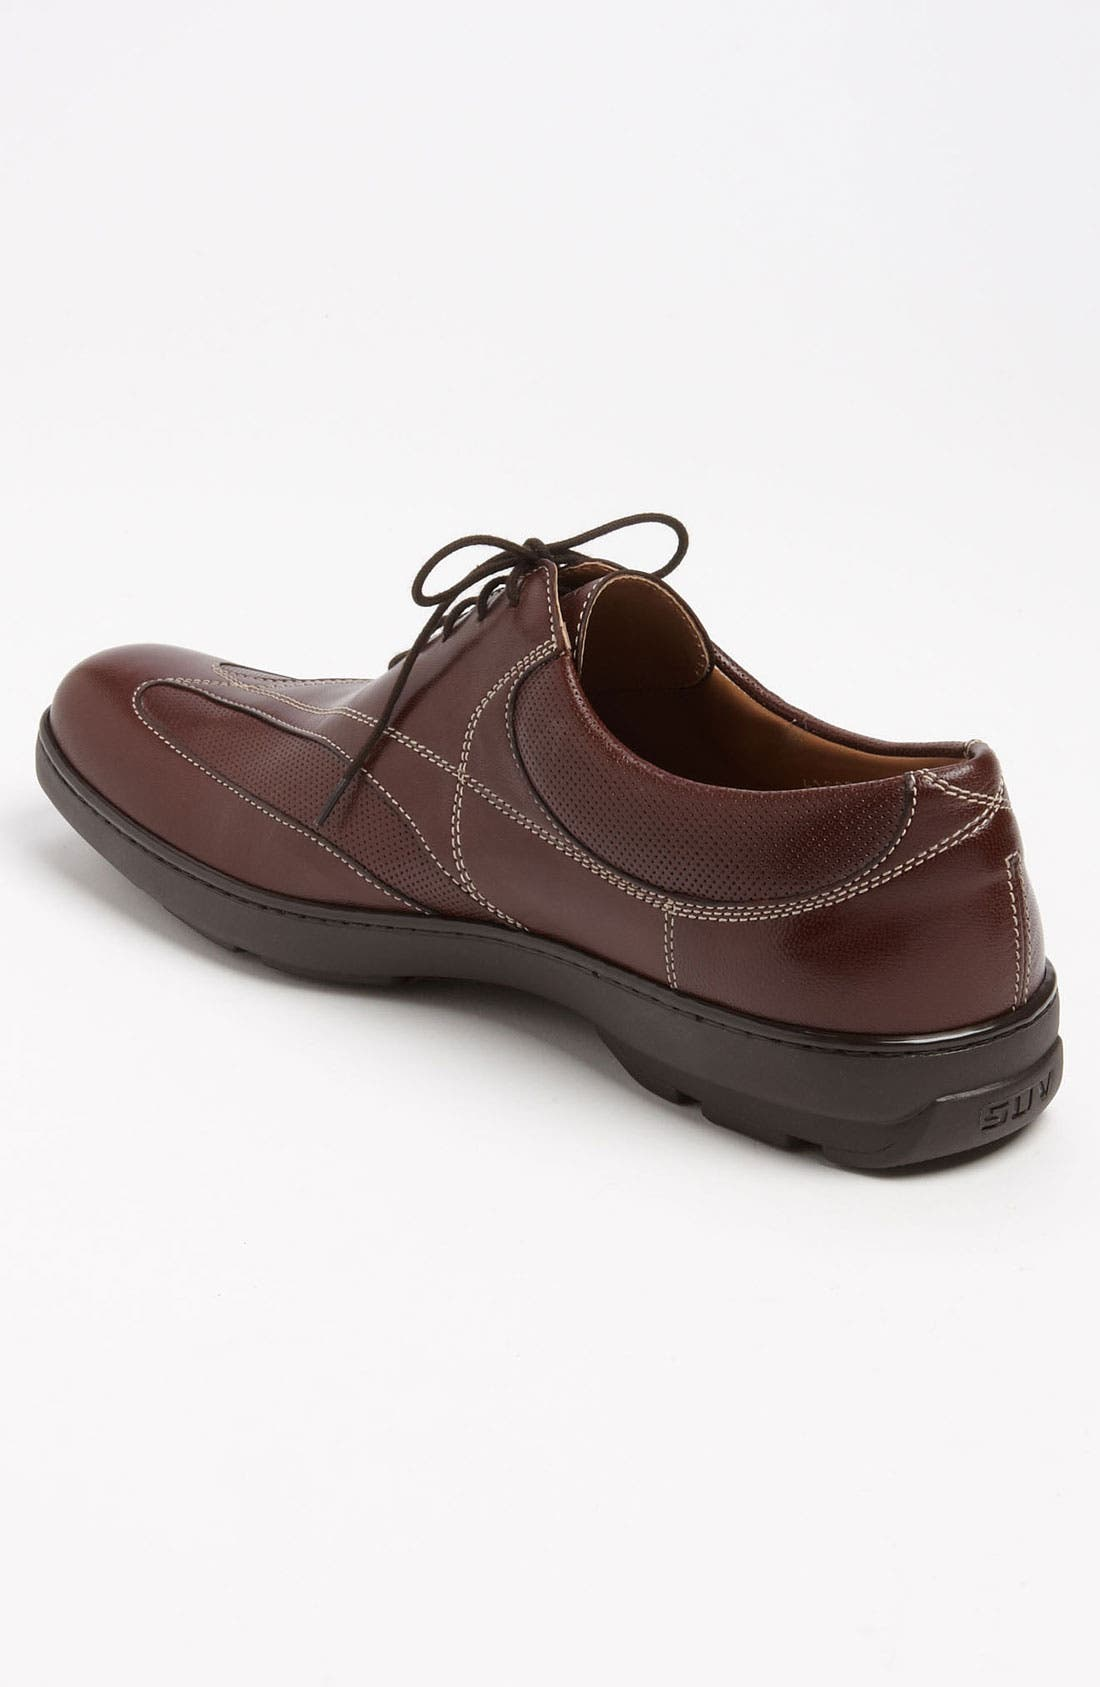 Alternate Image 2  - MICHAEL TOSCHI SPORTY OXFORD